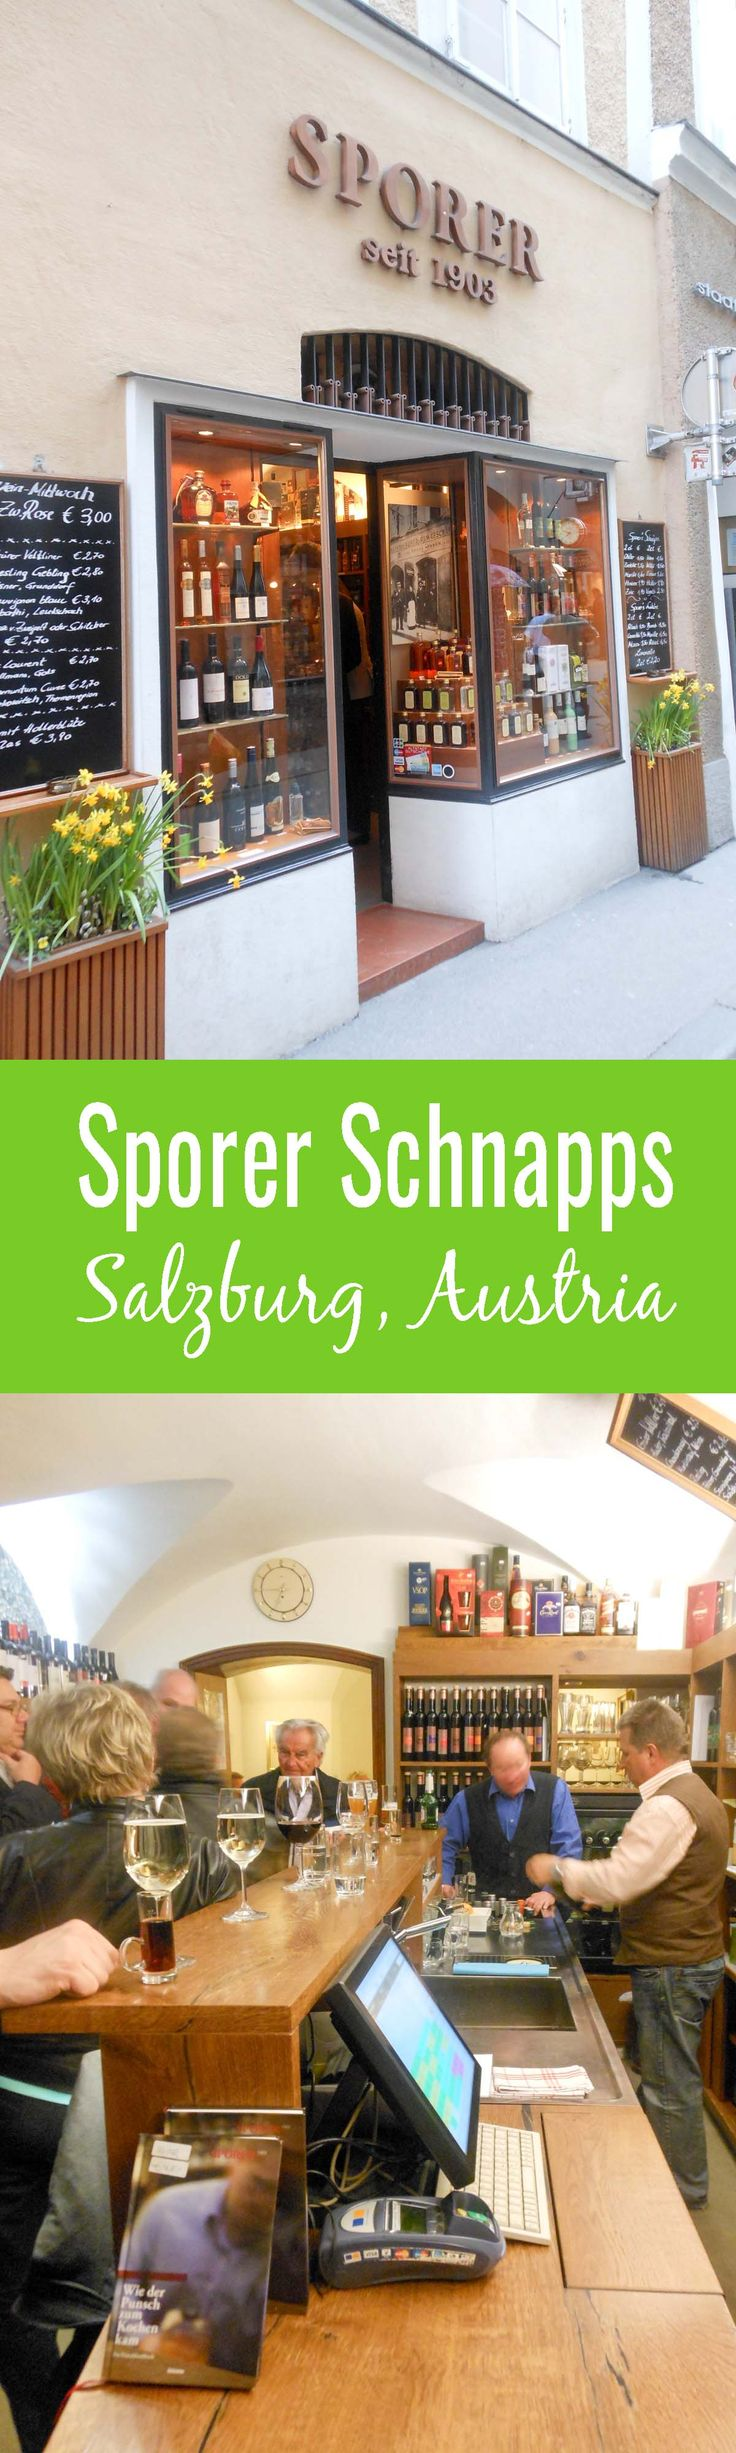 Sporer Salzburg is a must visit for a true taste of authentic schnapps. Sporer Schnapps is in the heart of Salzburg and will not disappoint!